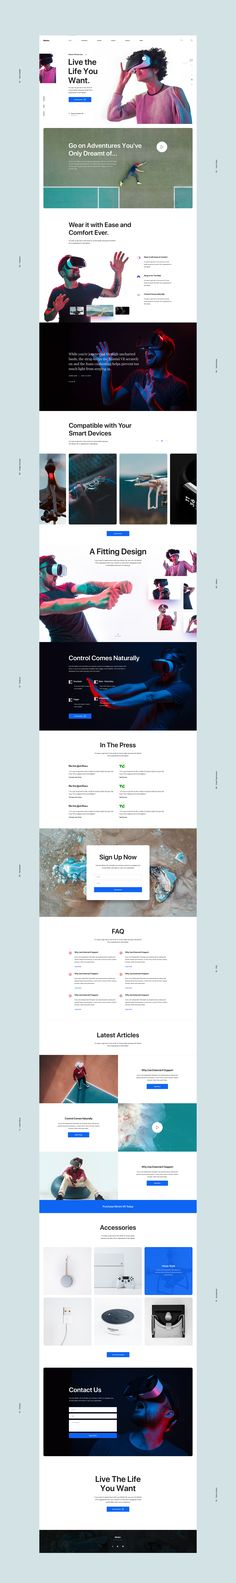 a9d63faf9c3ab 78 Best Web-design images in 2019 | Web design inspiration, App ...